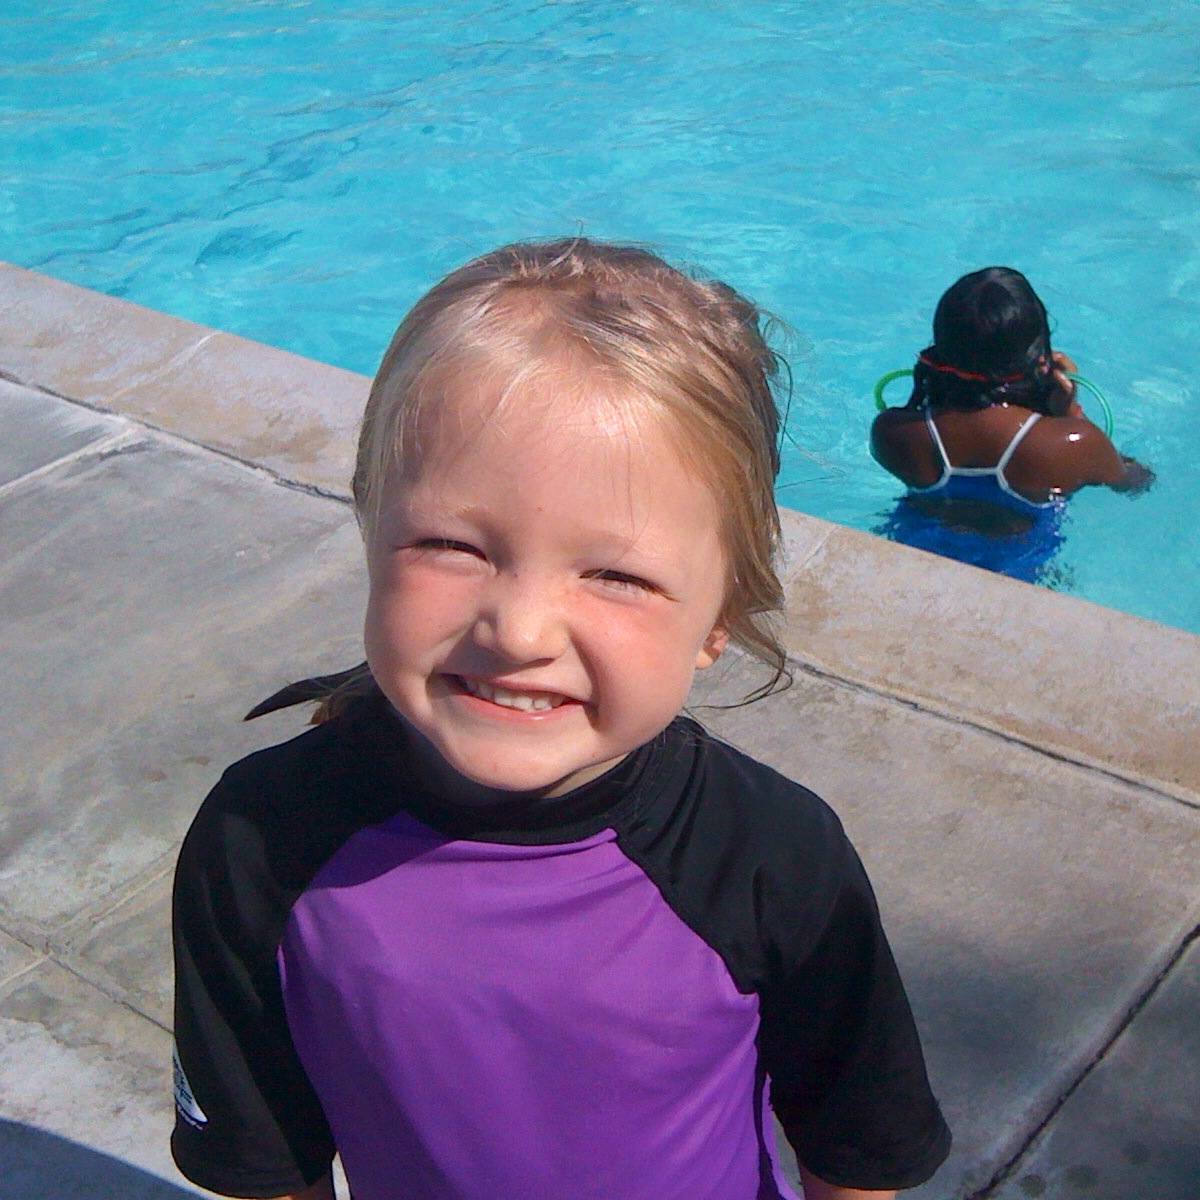 Here's my youngest, aged 4, learning to swim in San Jose, California. She had been to several swim lessons that year, but it finally clicked for her on this trip.